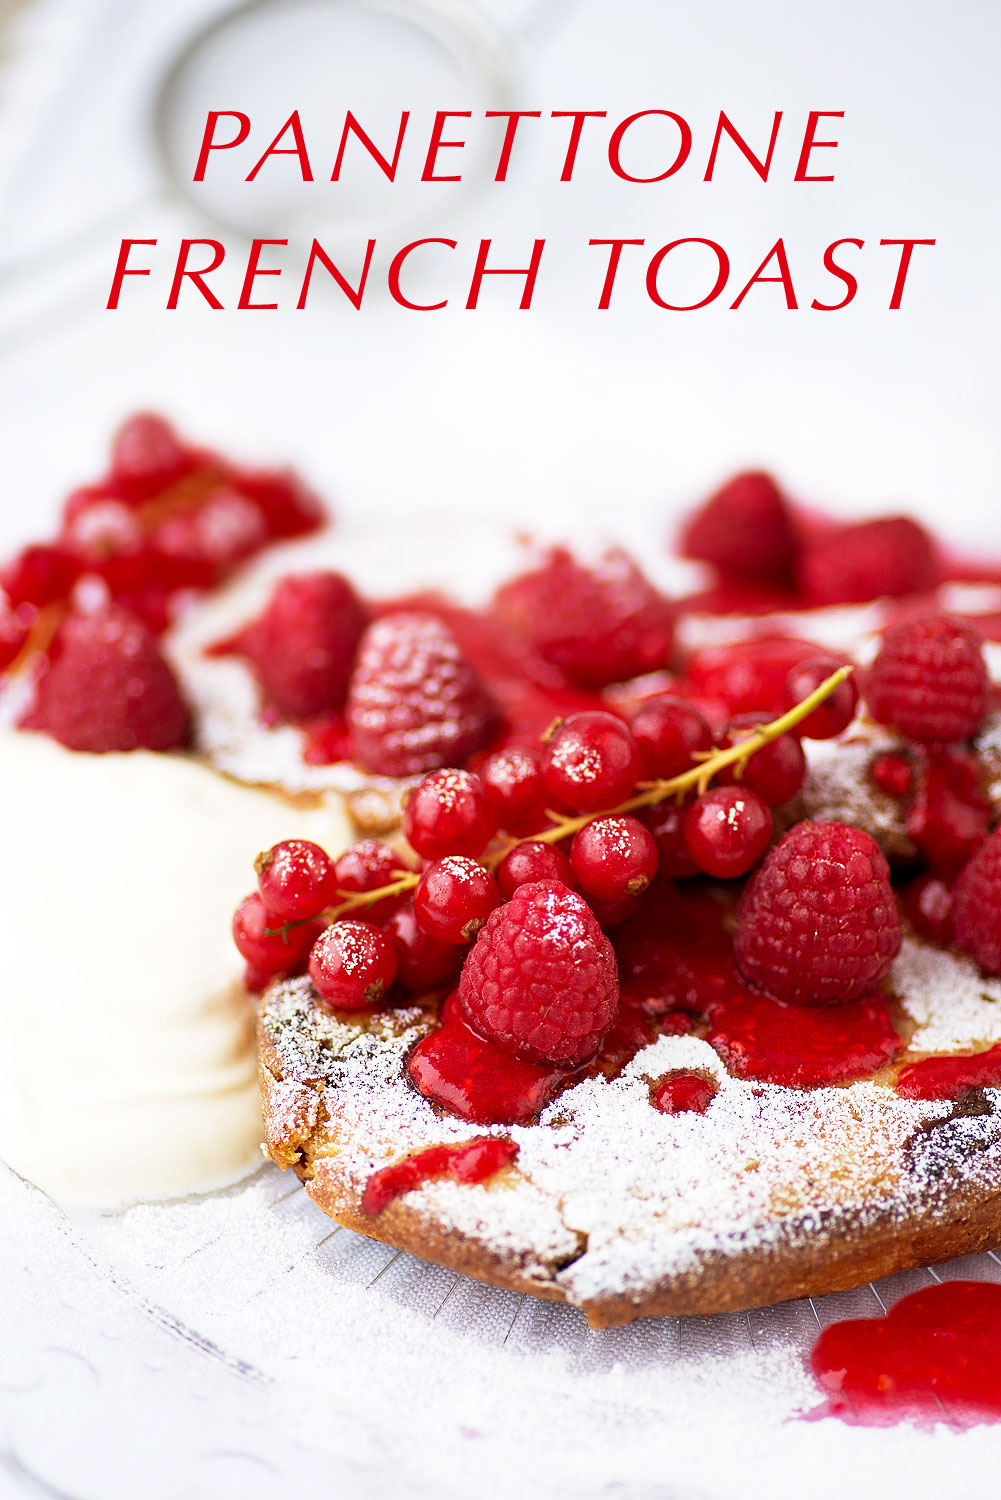 Panettone French Toast with Raspberry Compote - Mondomulia